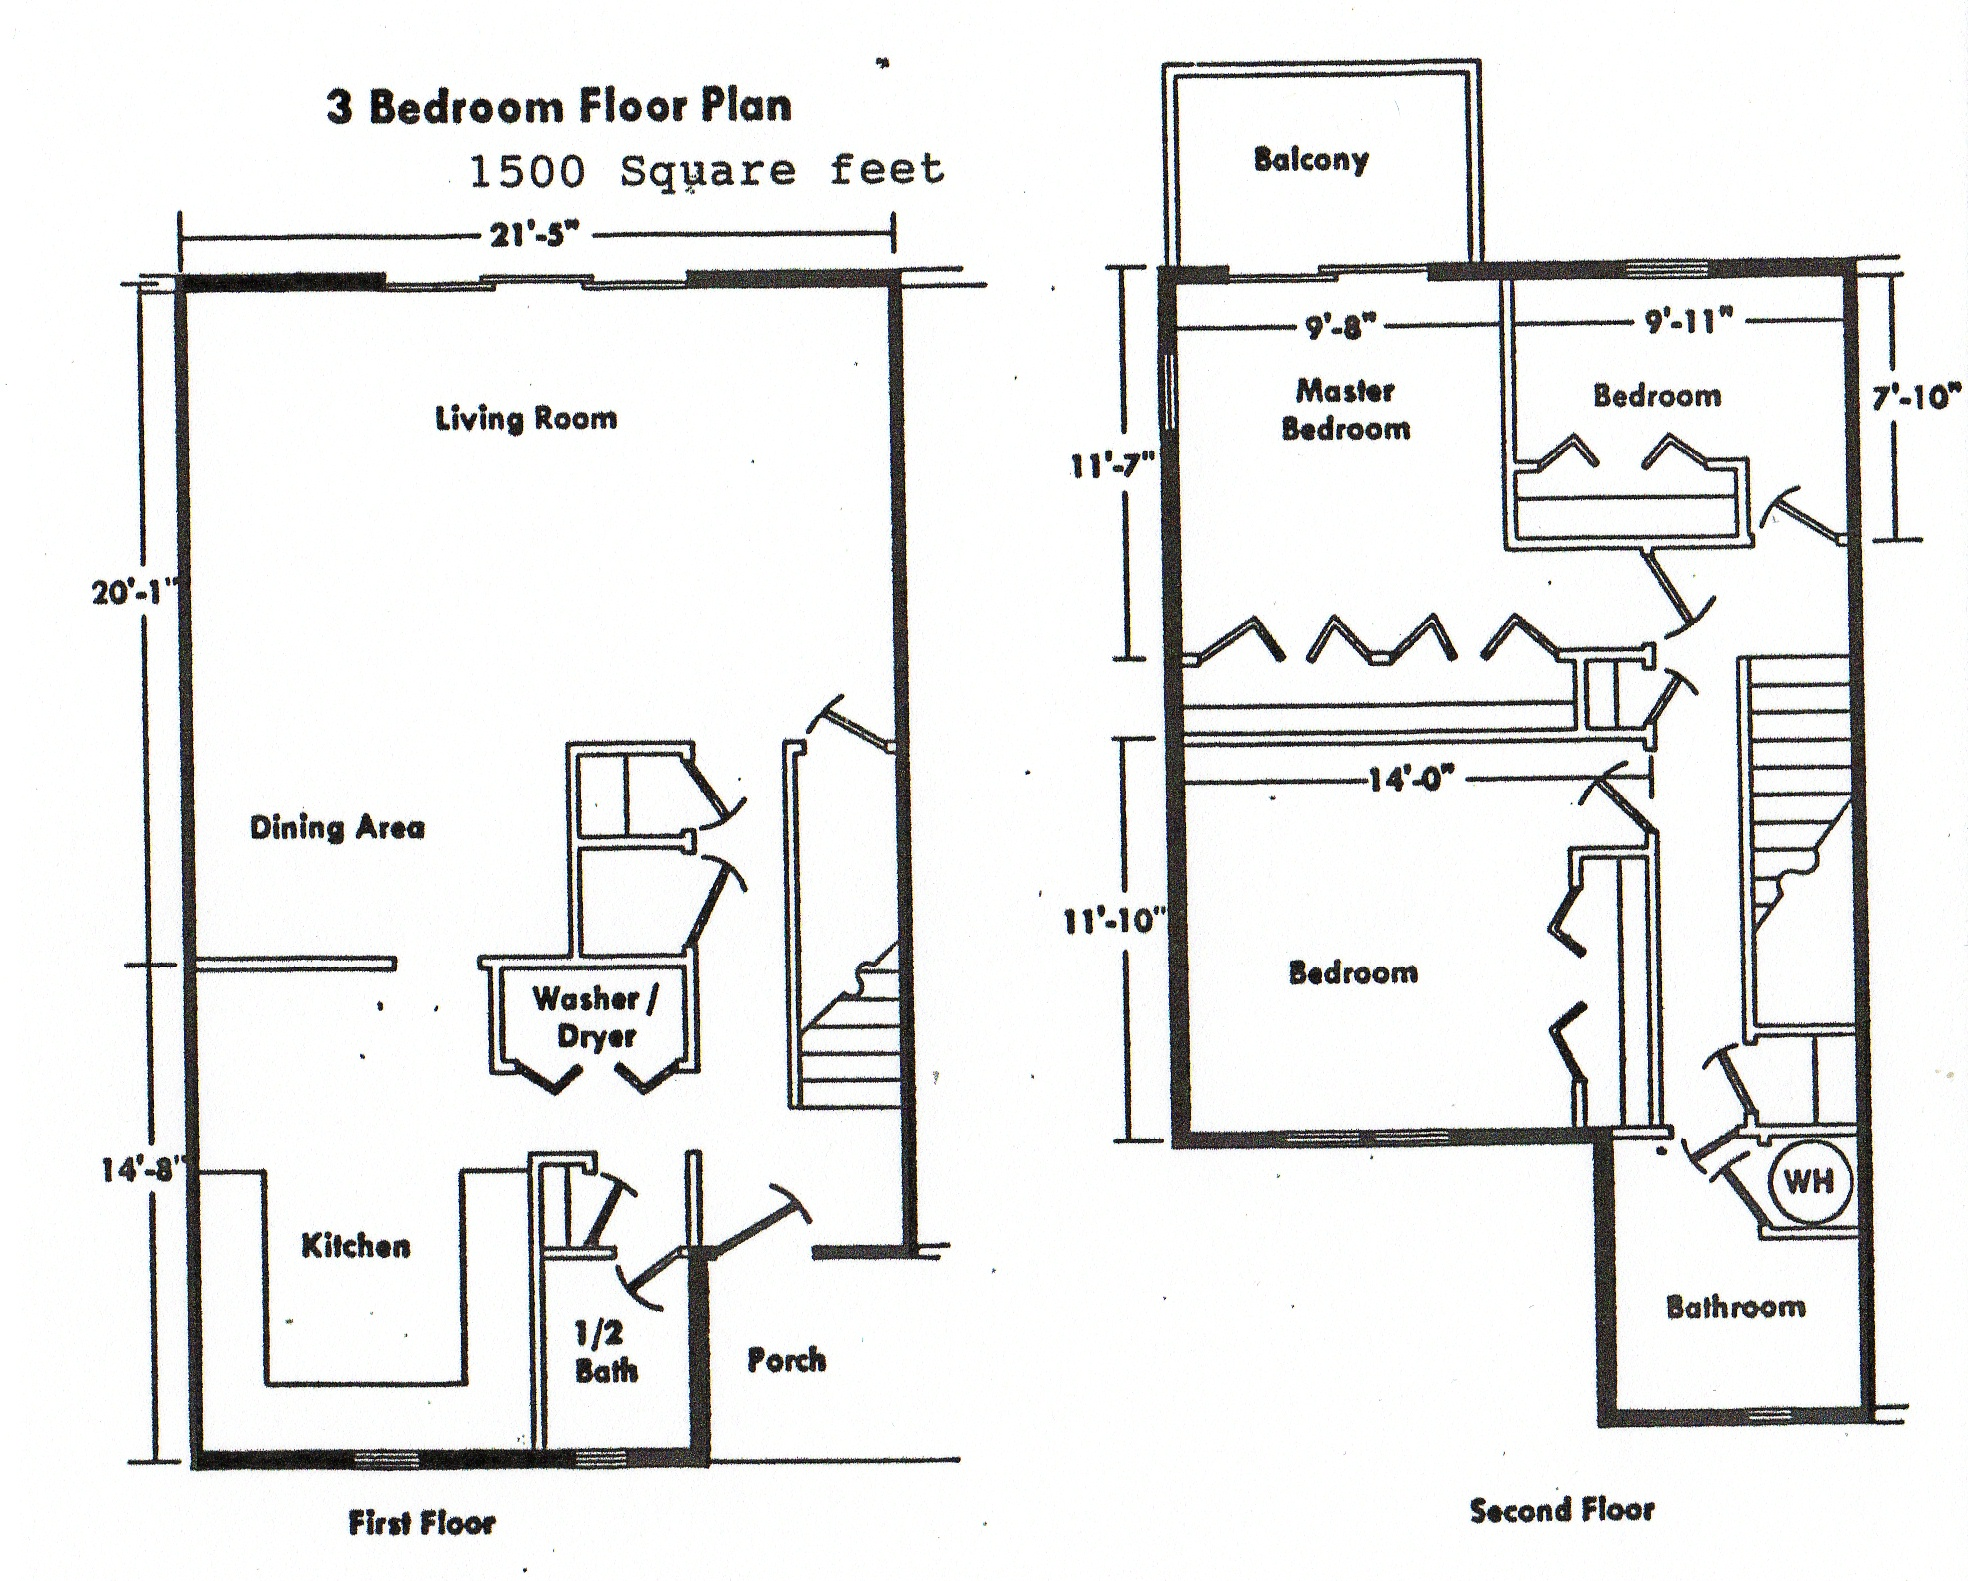 Home ideas Townhouse layout 3 bedrooms